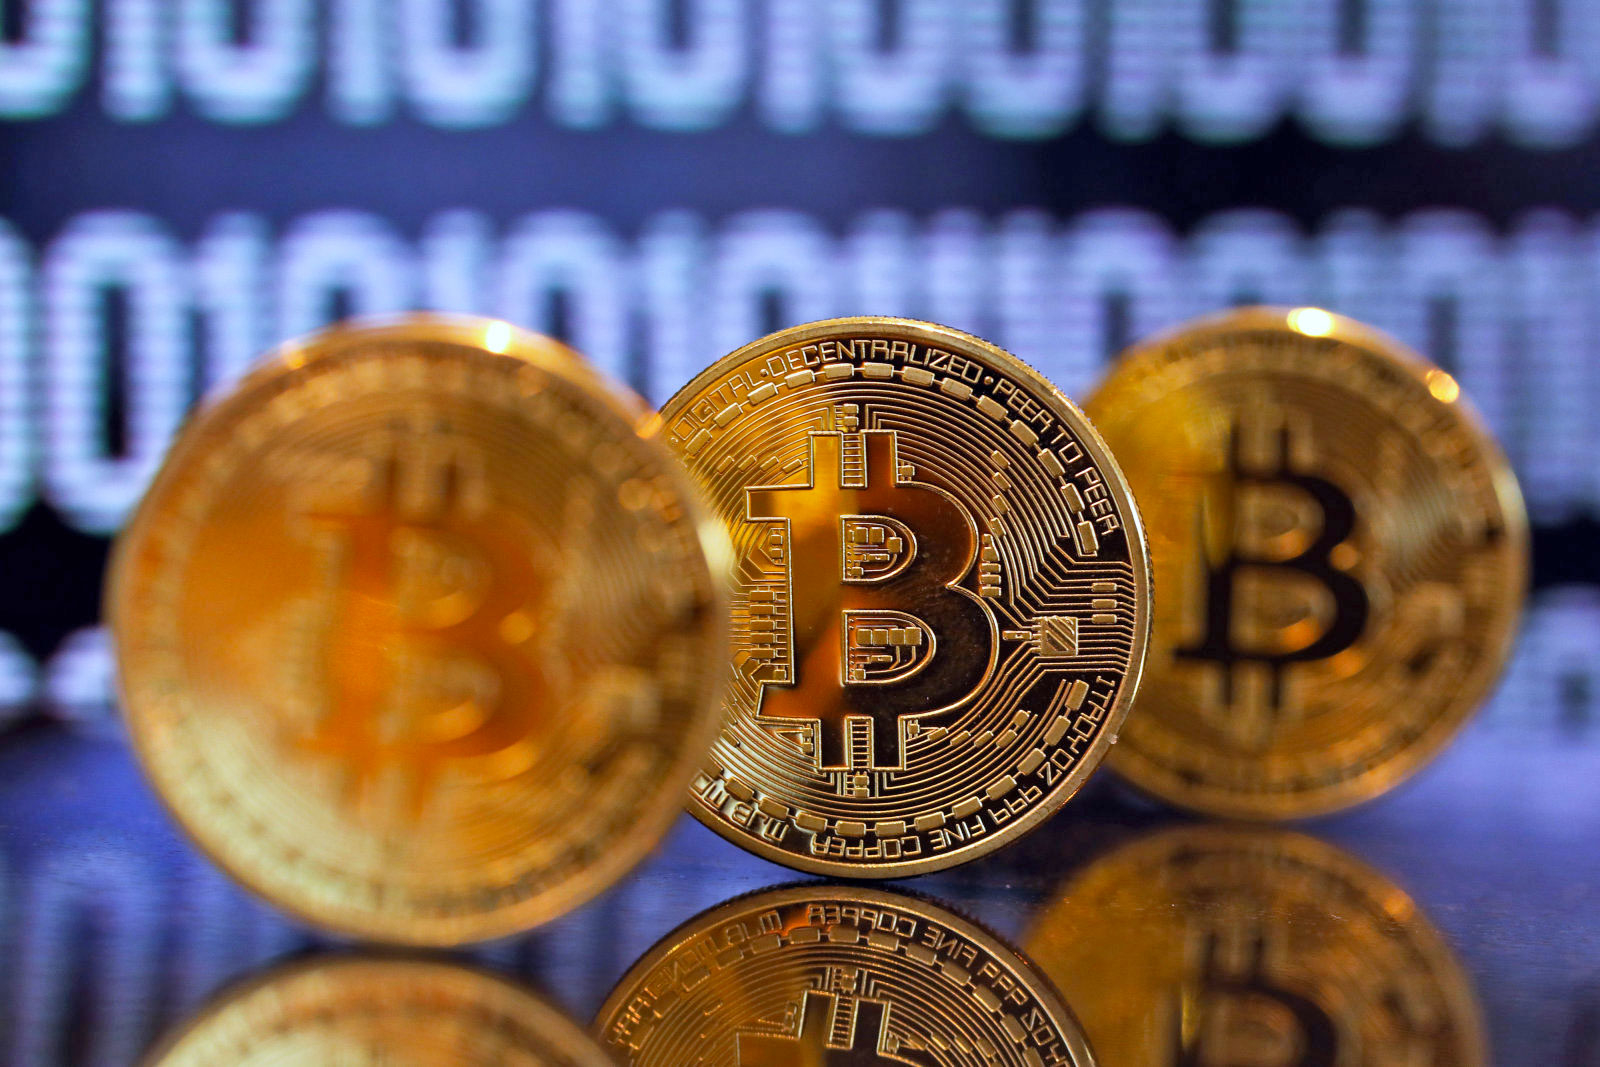 Bitcoin exchanges may suspend Bitcoin services on August 1.